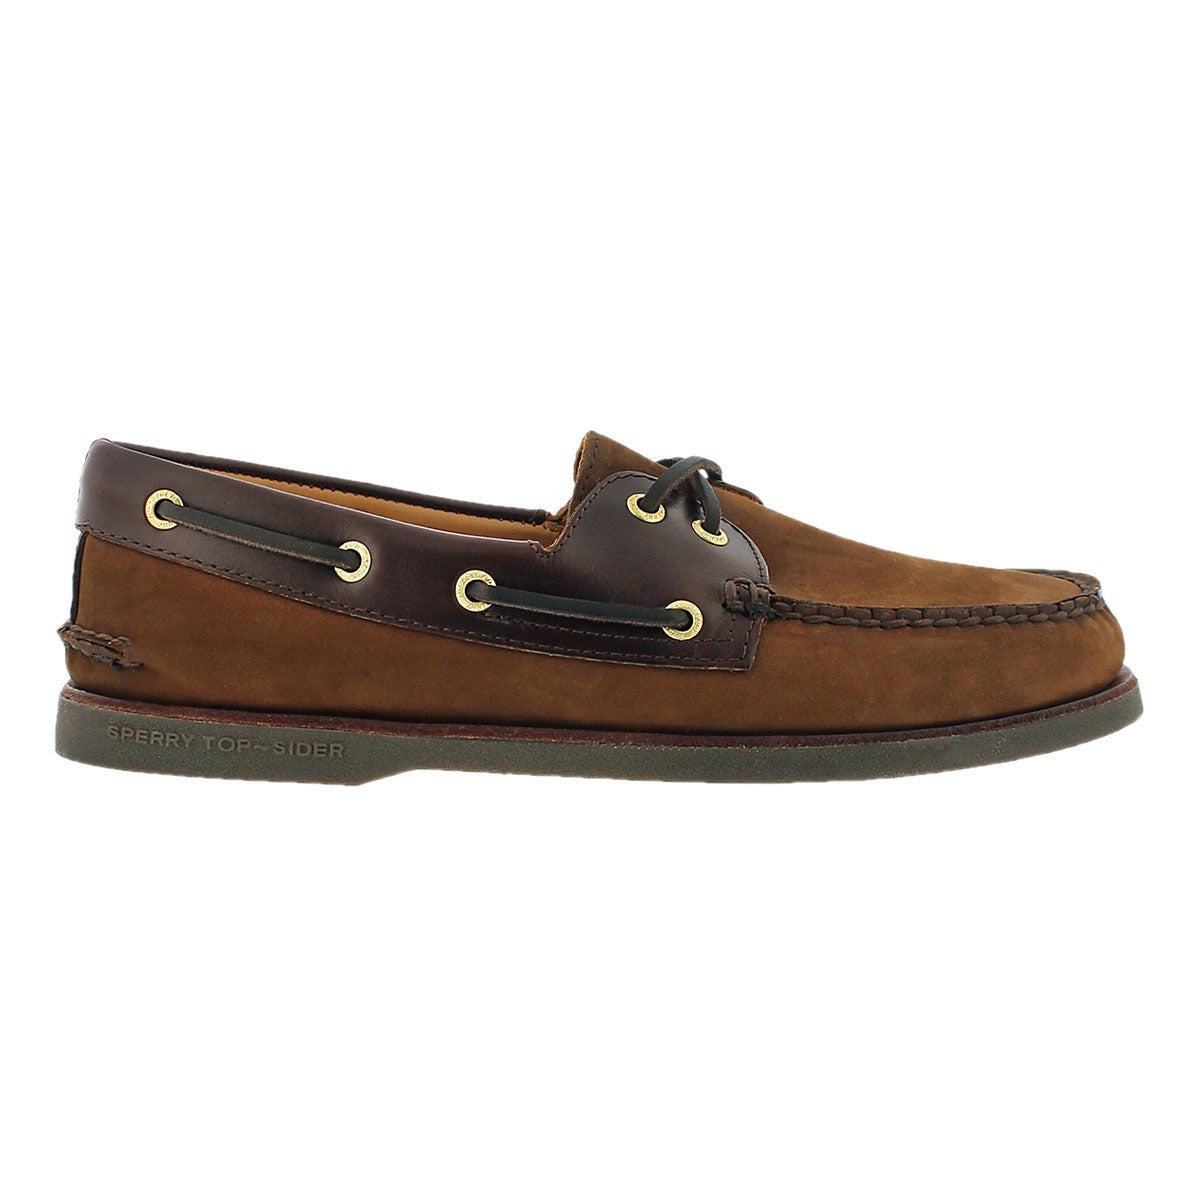 Mns Gold A/O 2-Eye brown boat shoe